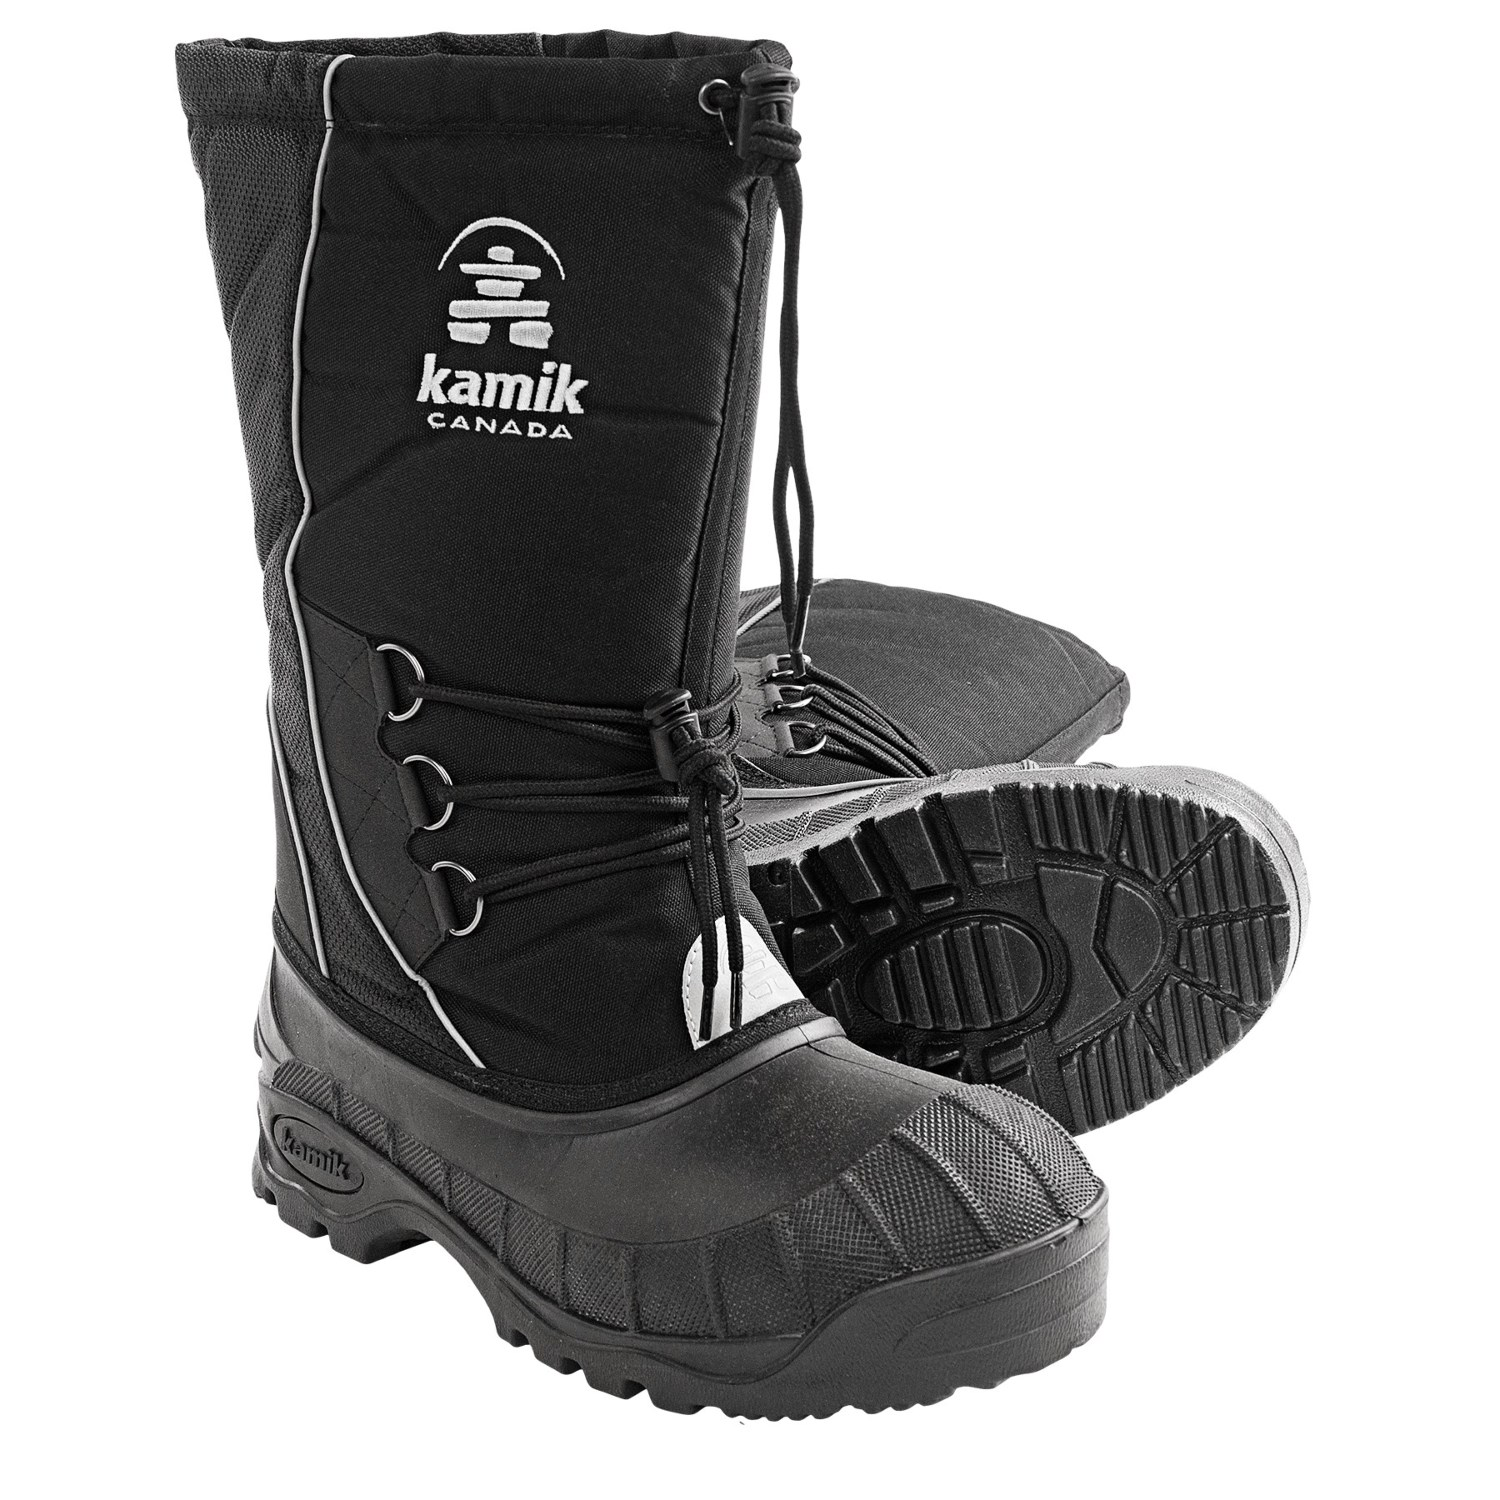 Mens Wide Winter Boots Sale | Santa Barbara Institute for